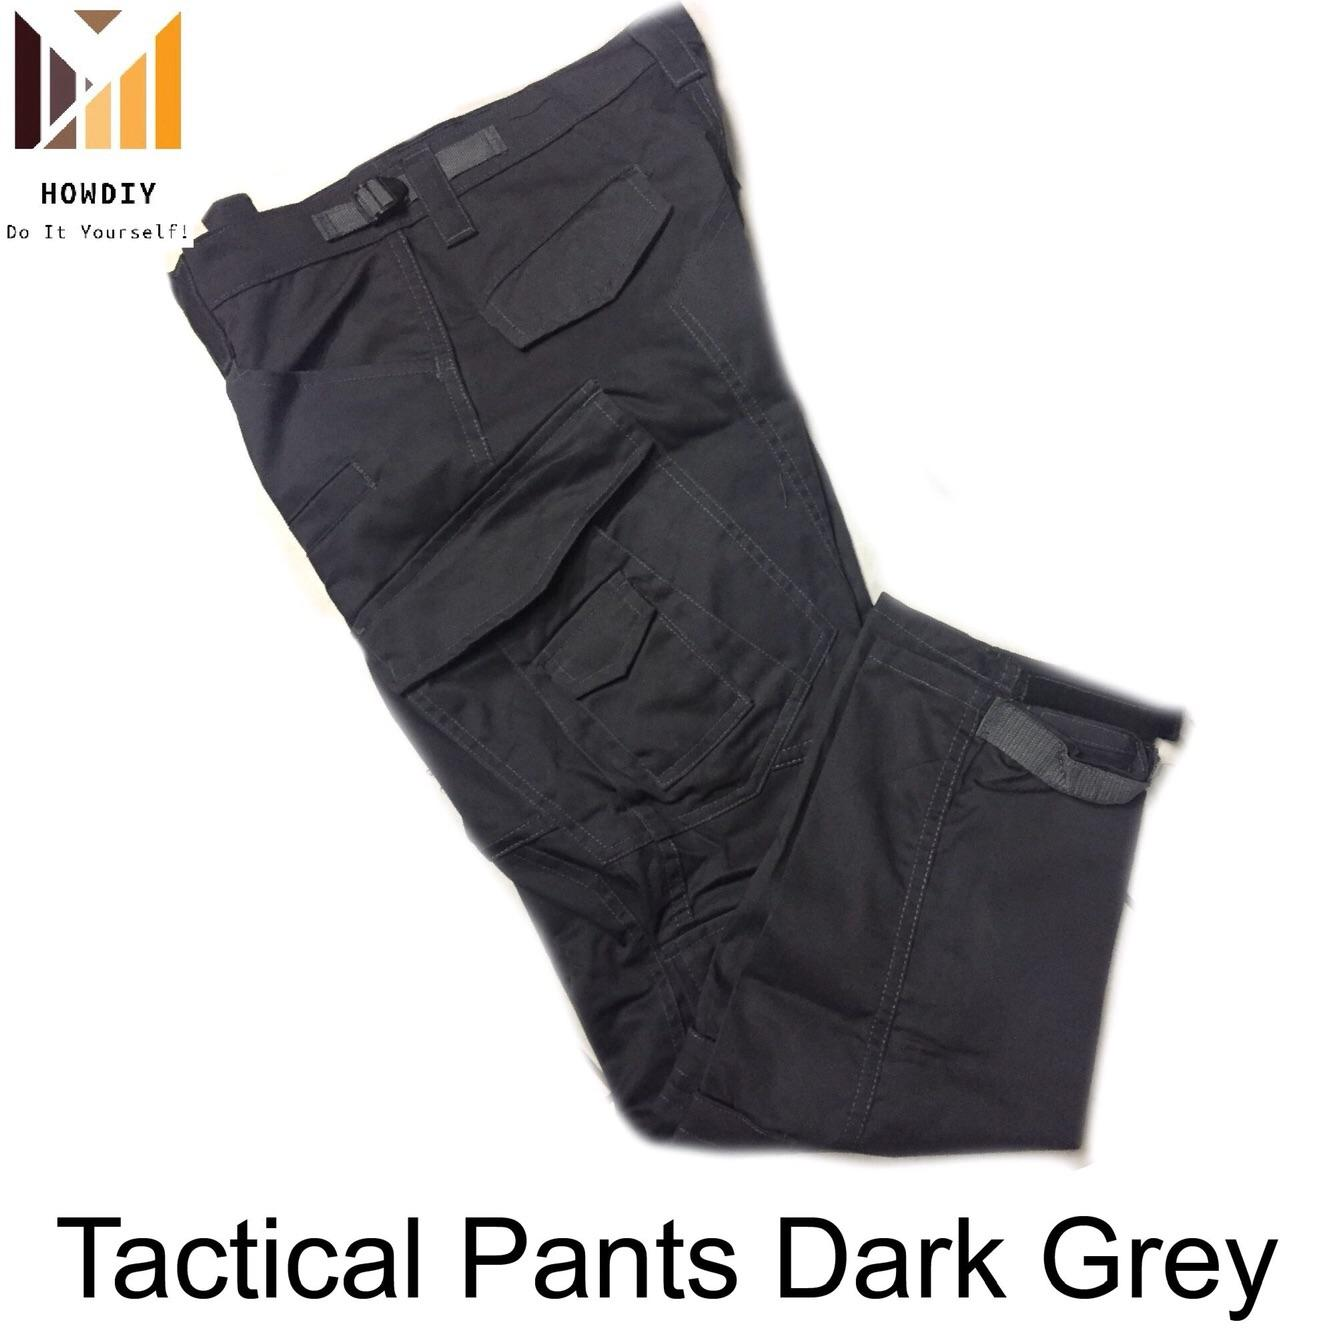 Tactical Pants for Men High Quality Dark Grey